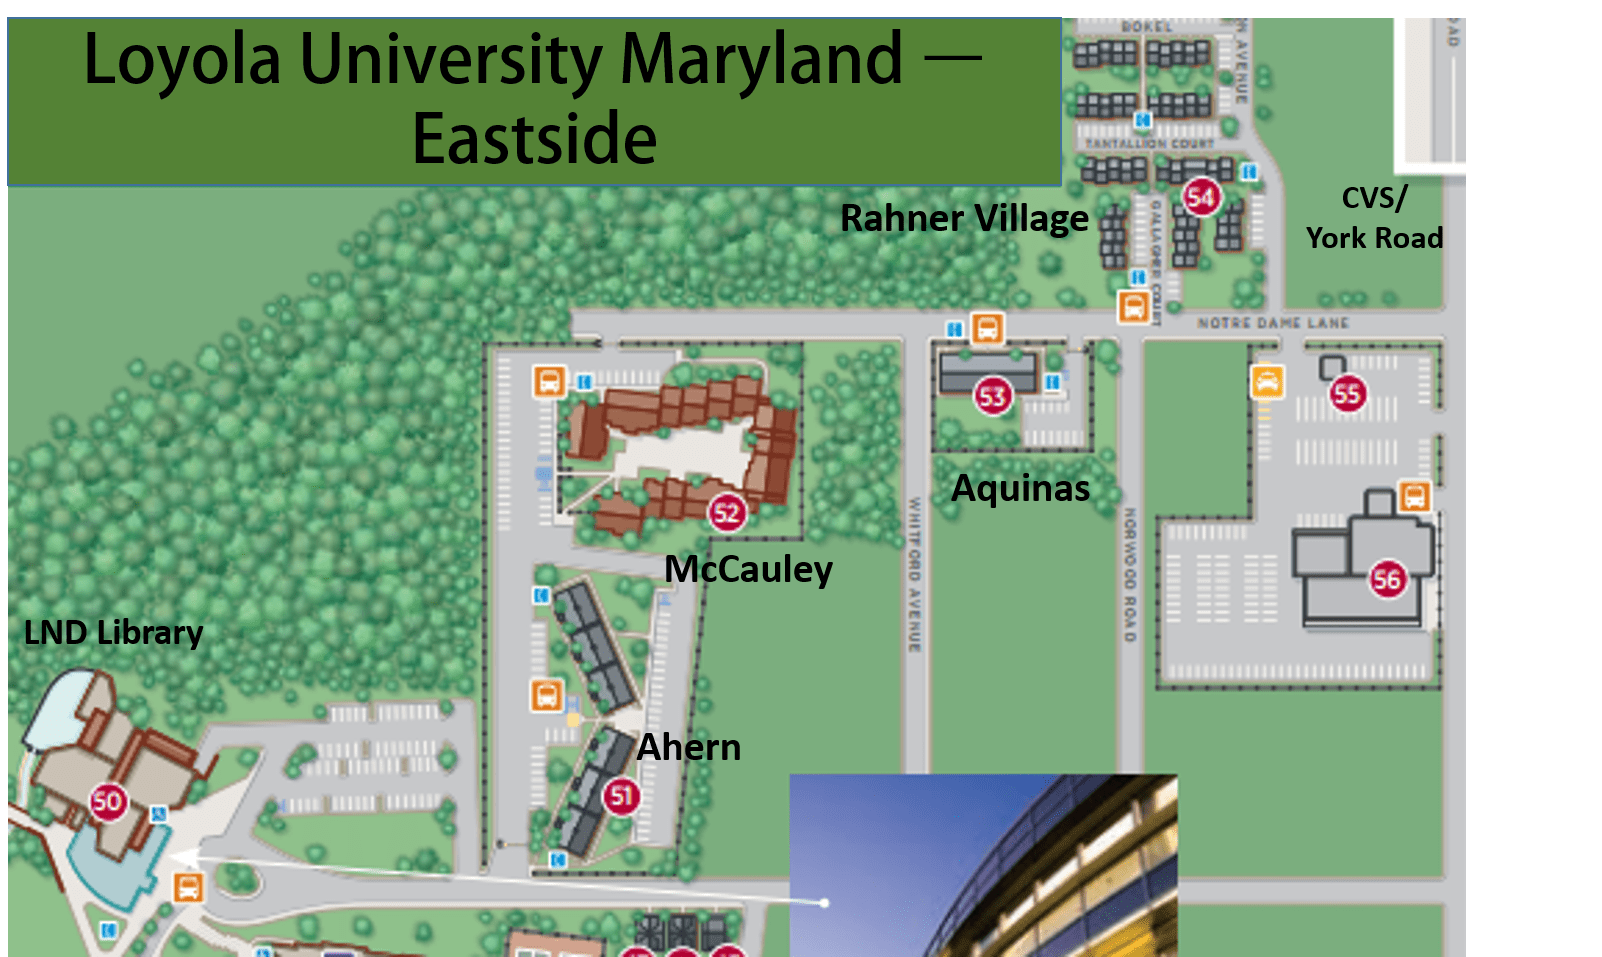 loyola university maryland campus map Major Safety Concerns Need To Be Addressed Now The Greyhound loyola university maryland campus map